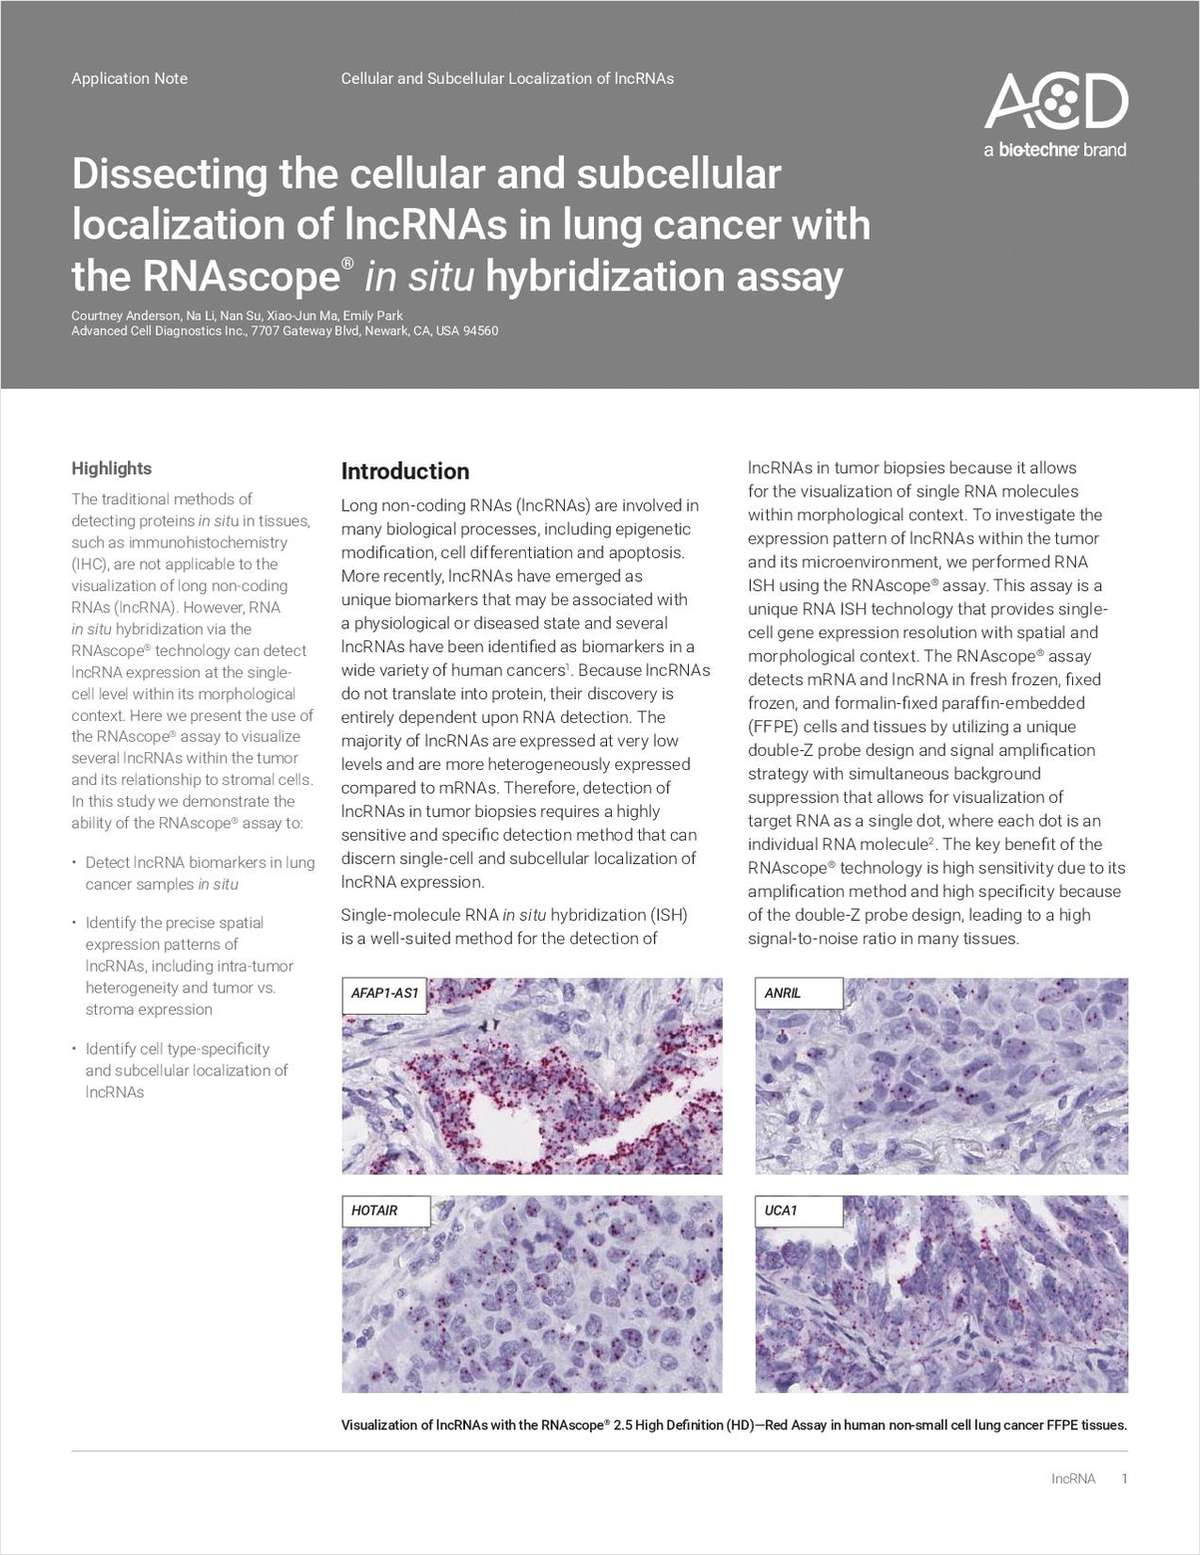 Dissecting the Cellular and Subcellular Localization of lncRNAs in Lung Cancer with the RNAscope In Situ Hybridization Assay